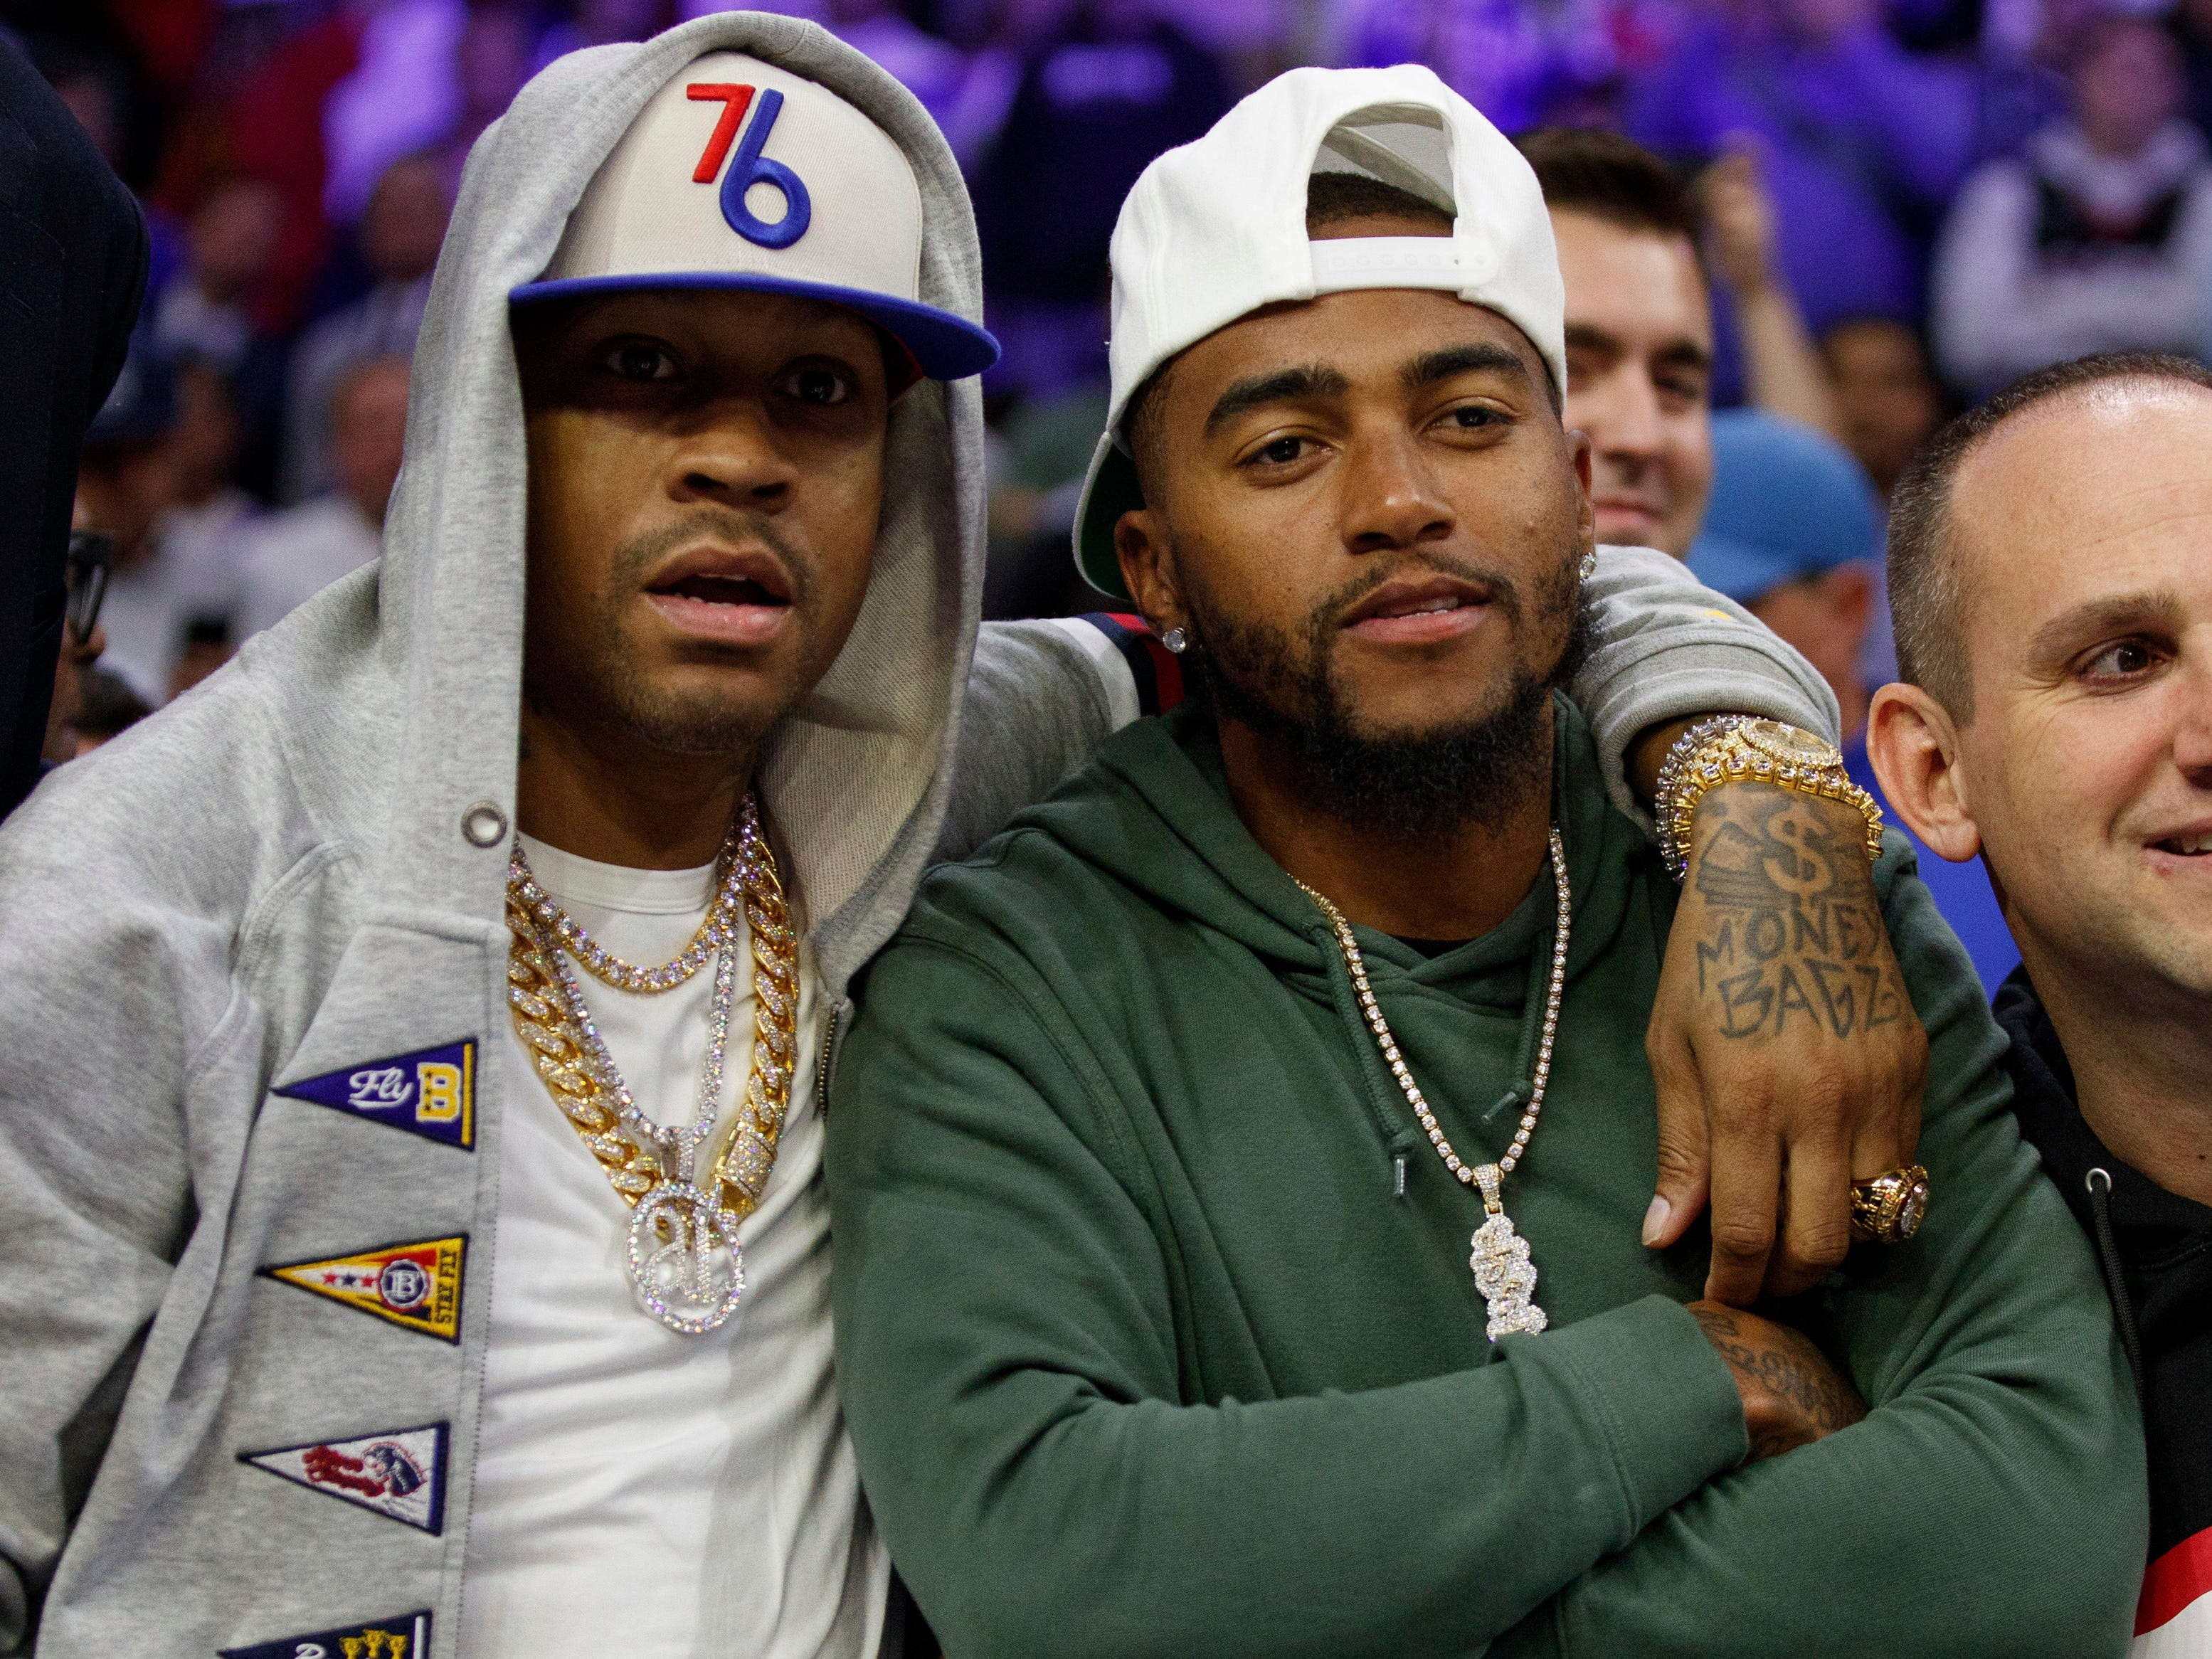 April 15: Former 76er Allen Iverson, left, poses with Eagles receiver DeSean Jackson during the second half of Game 2 against the Nets in Philadelphia.